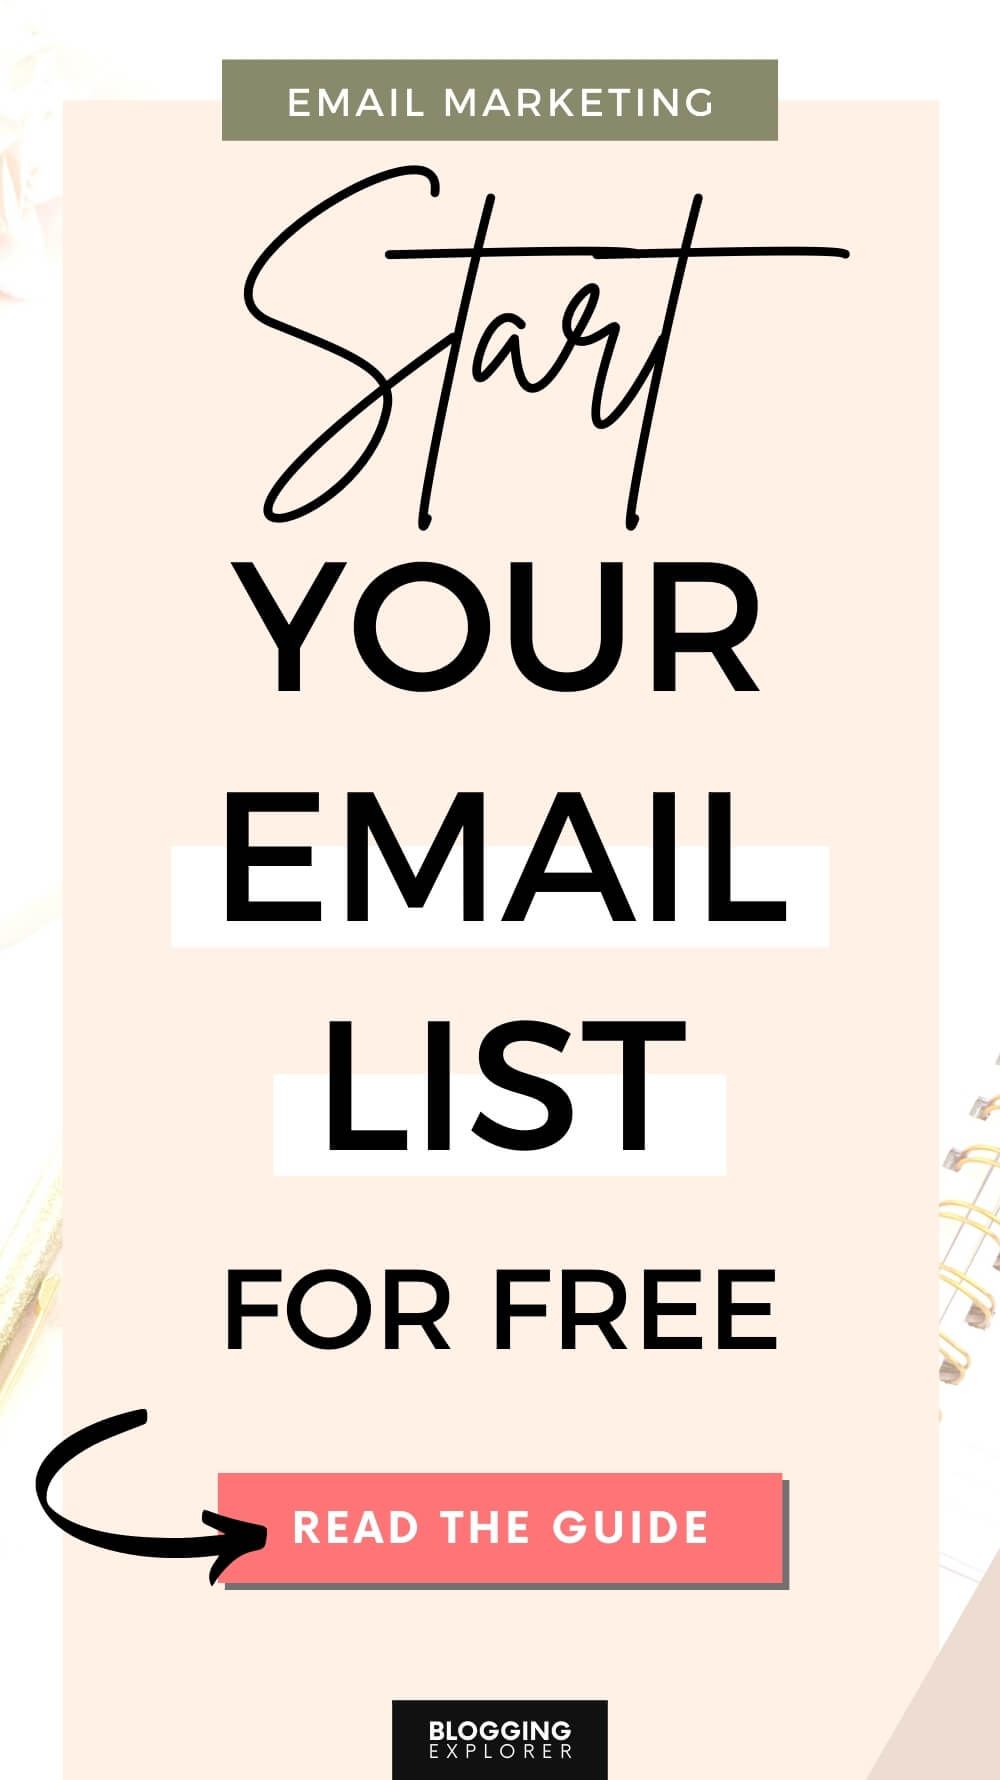 Email marketing for beginners - Start an email list for free - Make money blogging